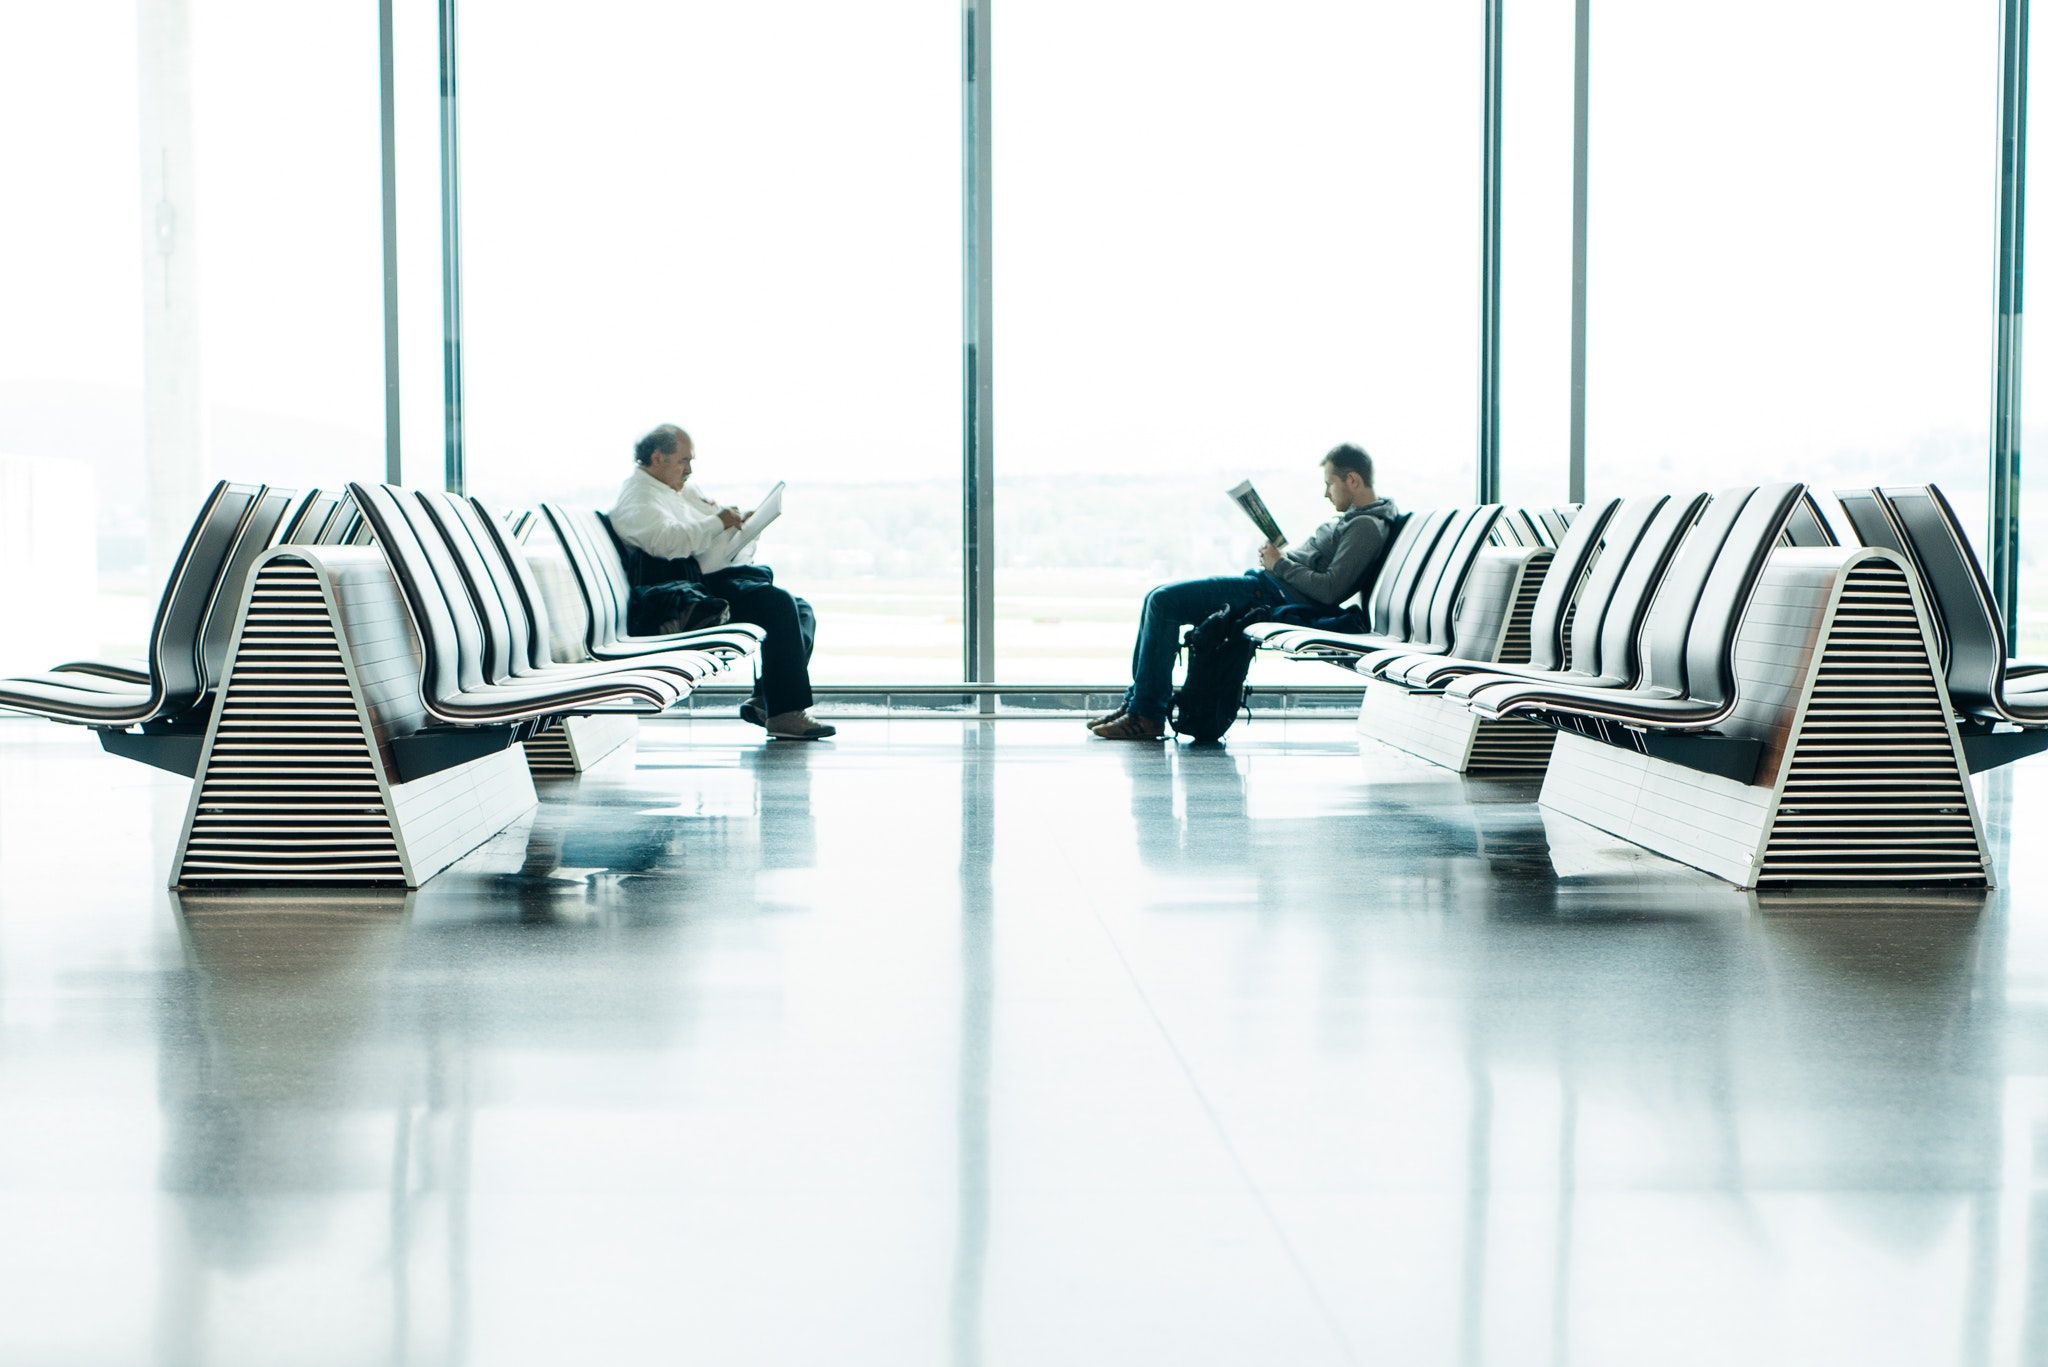 Two men sitting in front of each other in the airport waiting area